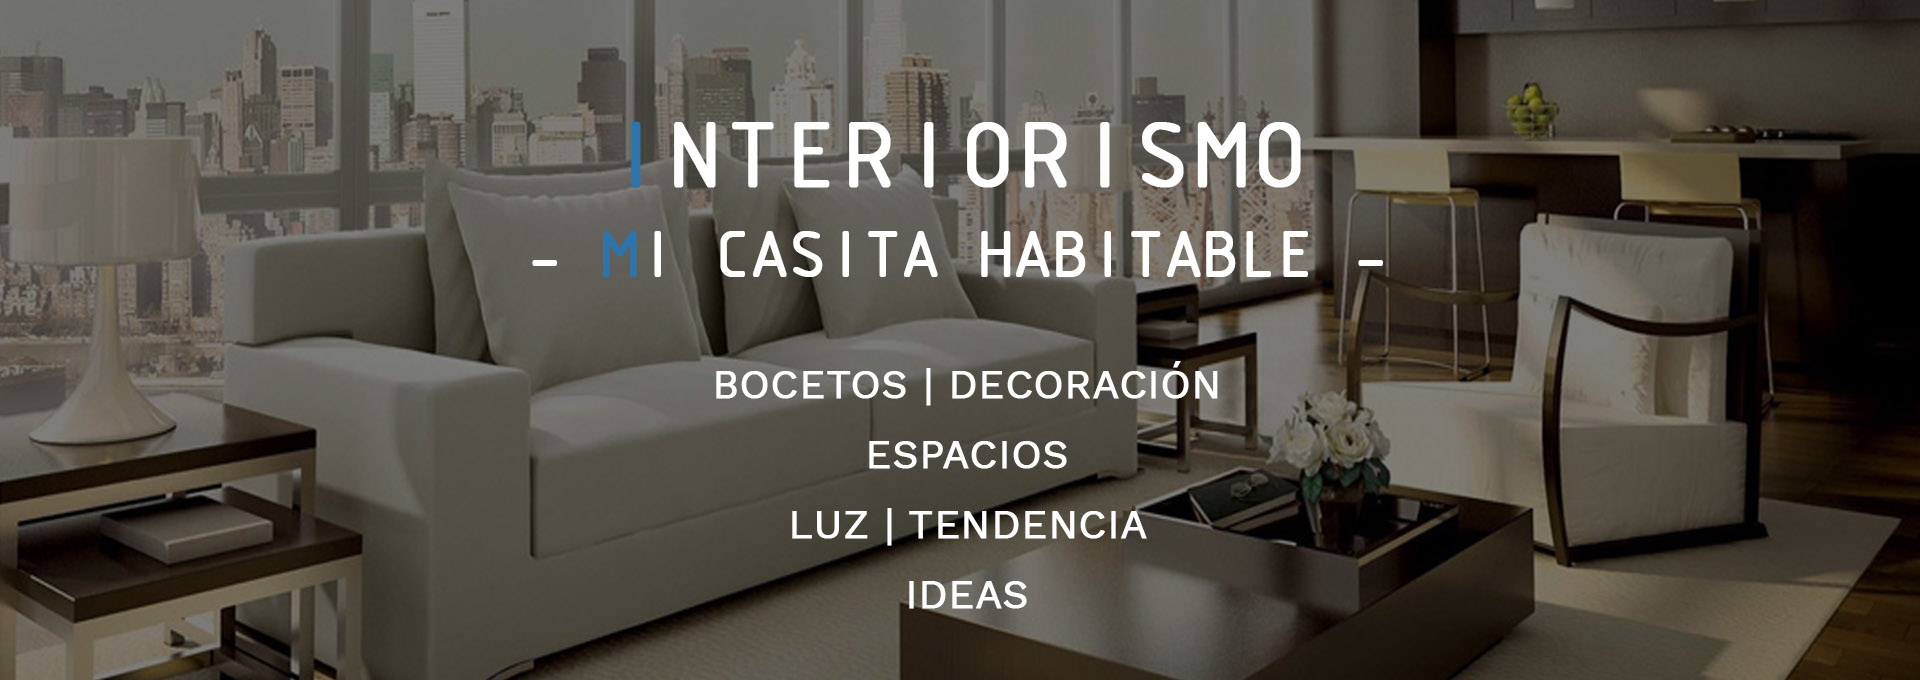 Interiorismo en Madrid